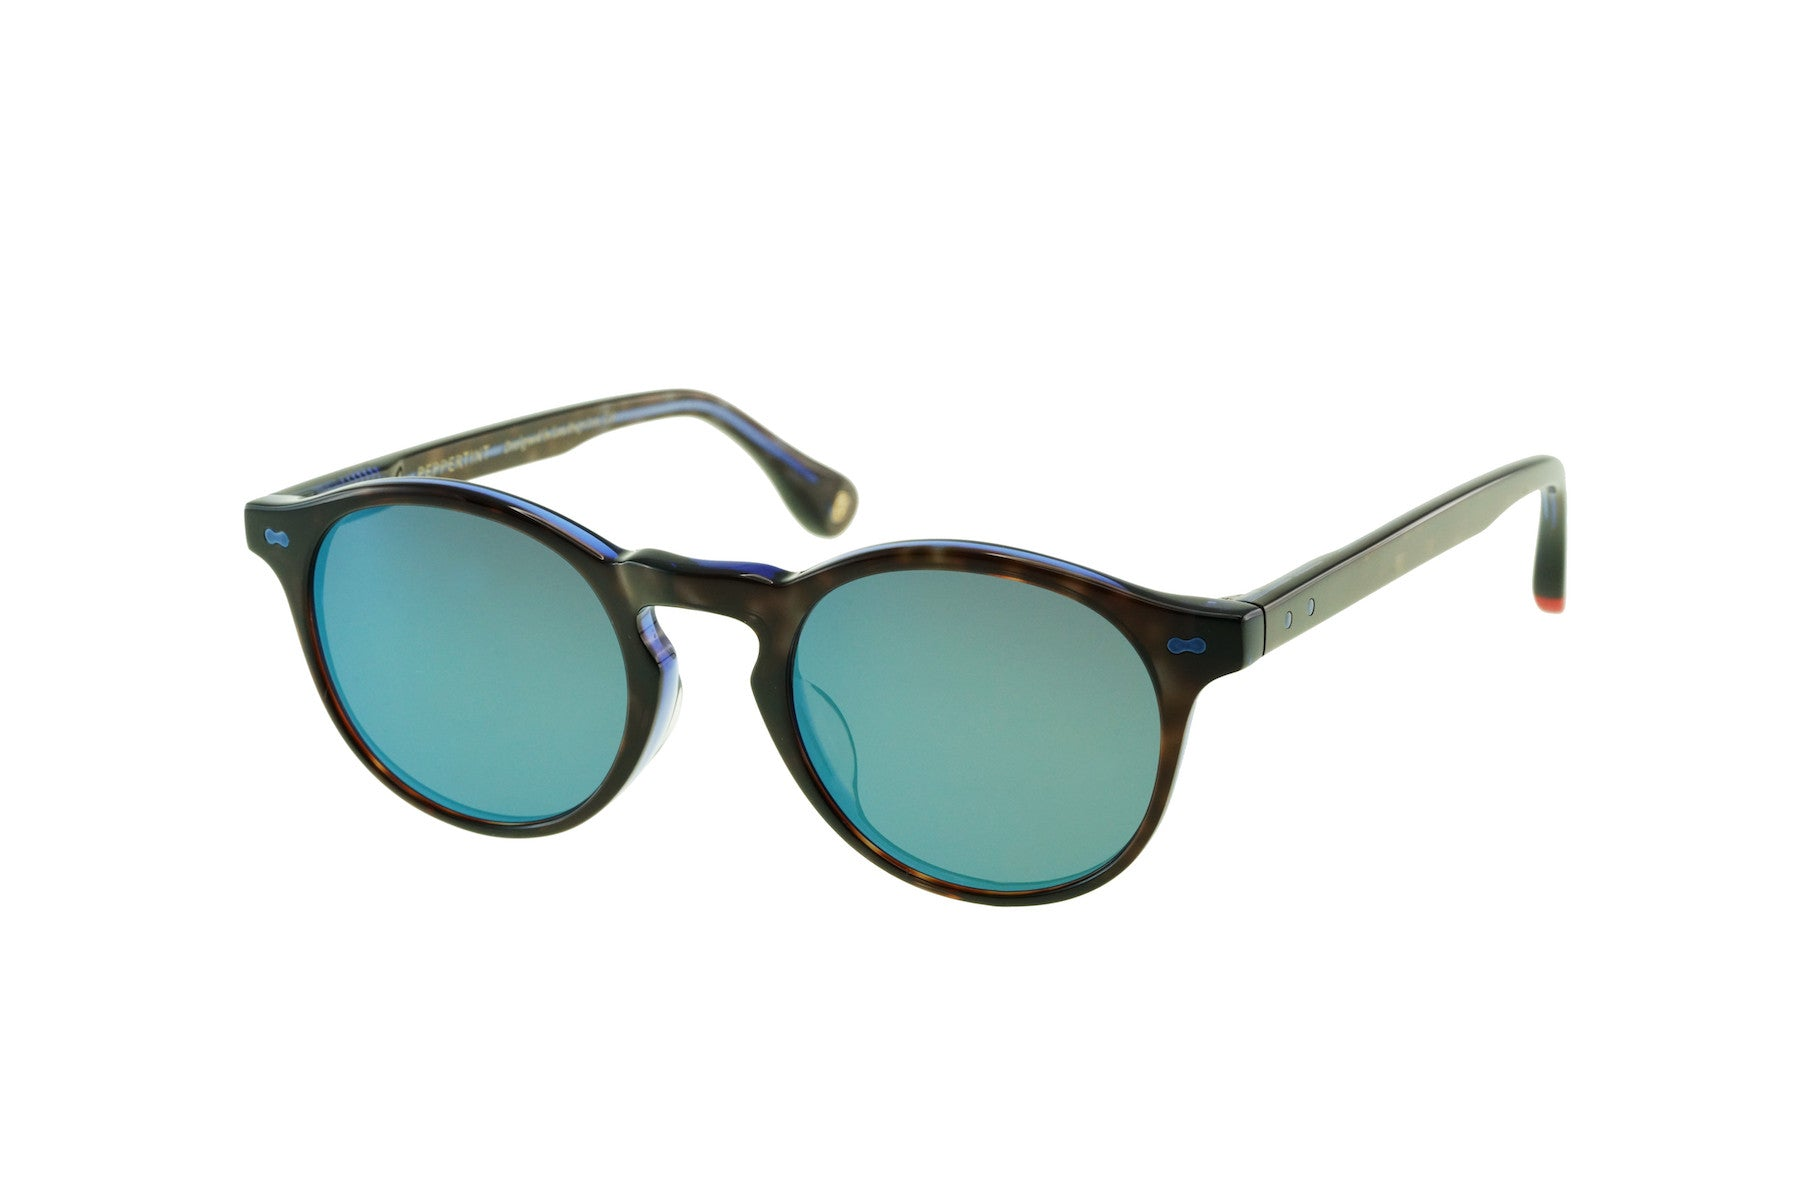 Grand 745 - Peppertint - Designer sunglasses